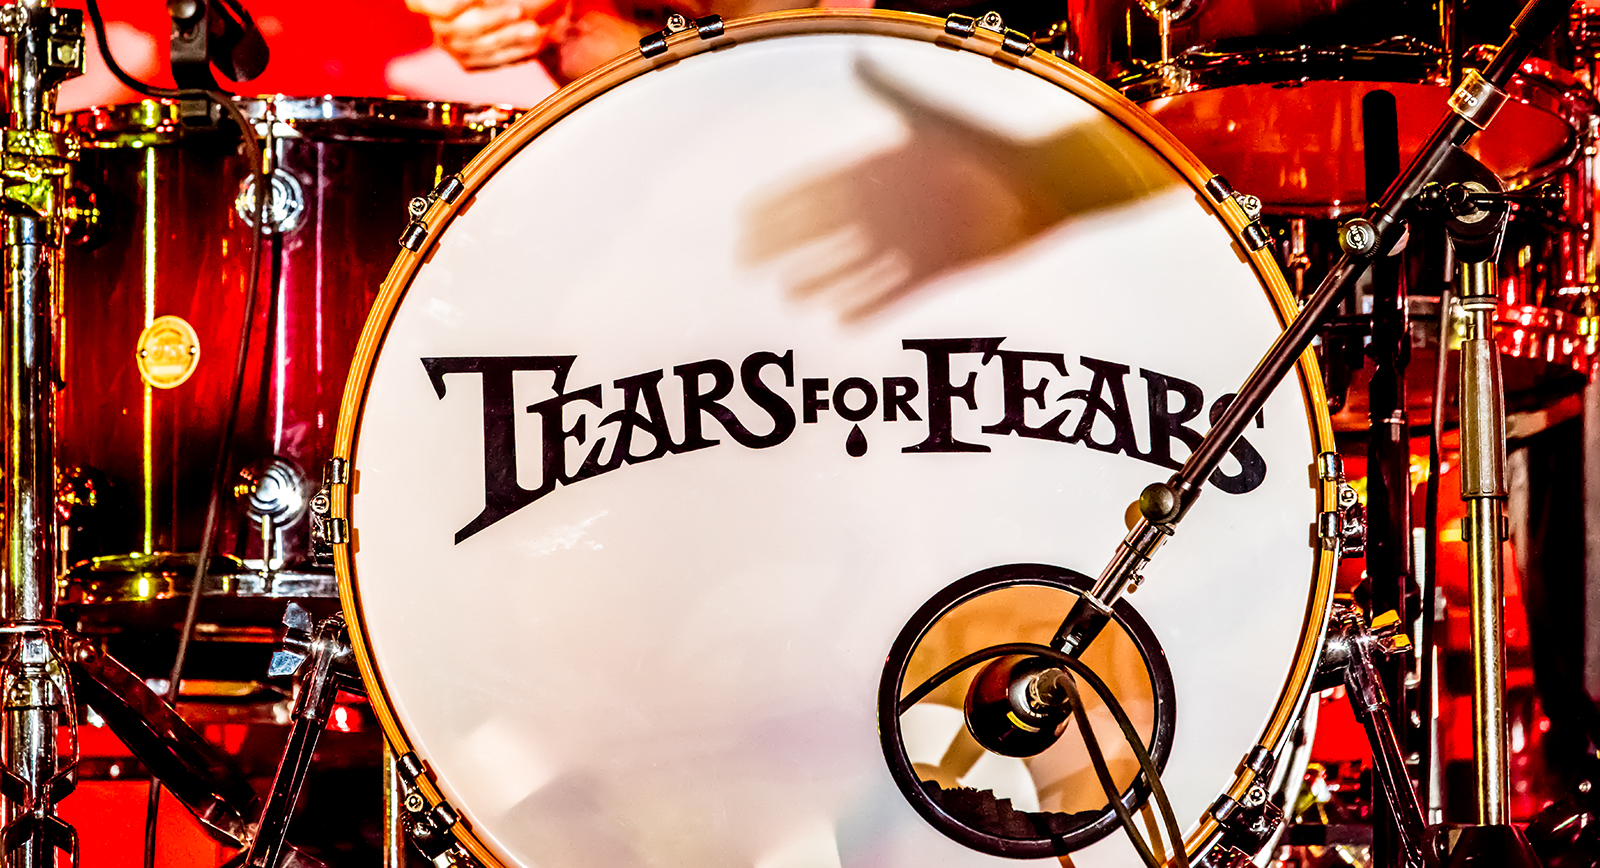 tears-for-fears-2016-tour-concert-review-live-photos-humphreys-san-diego-fi